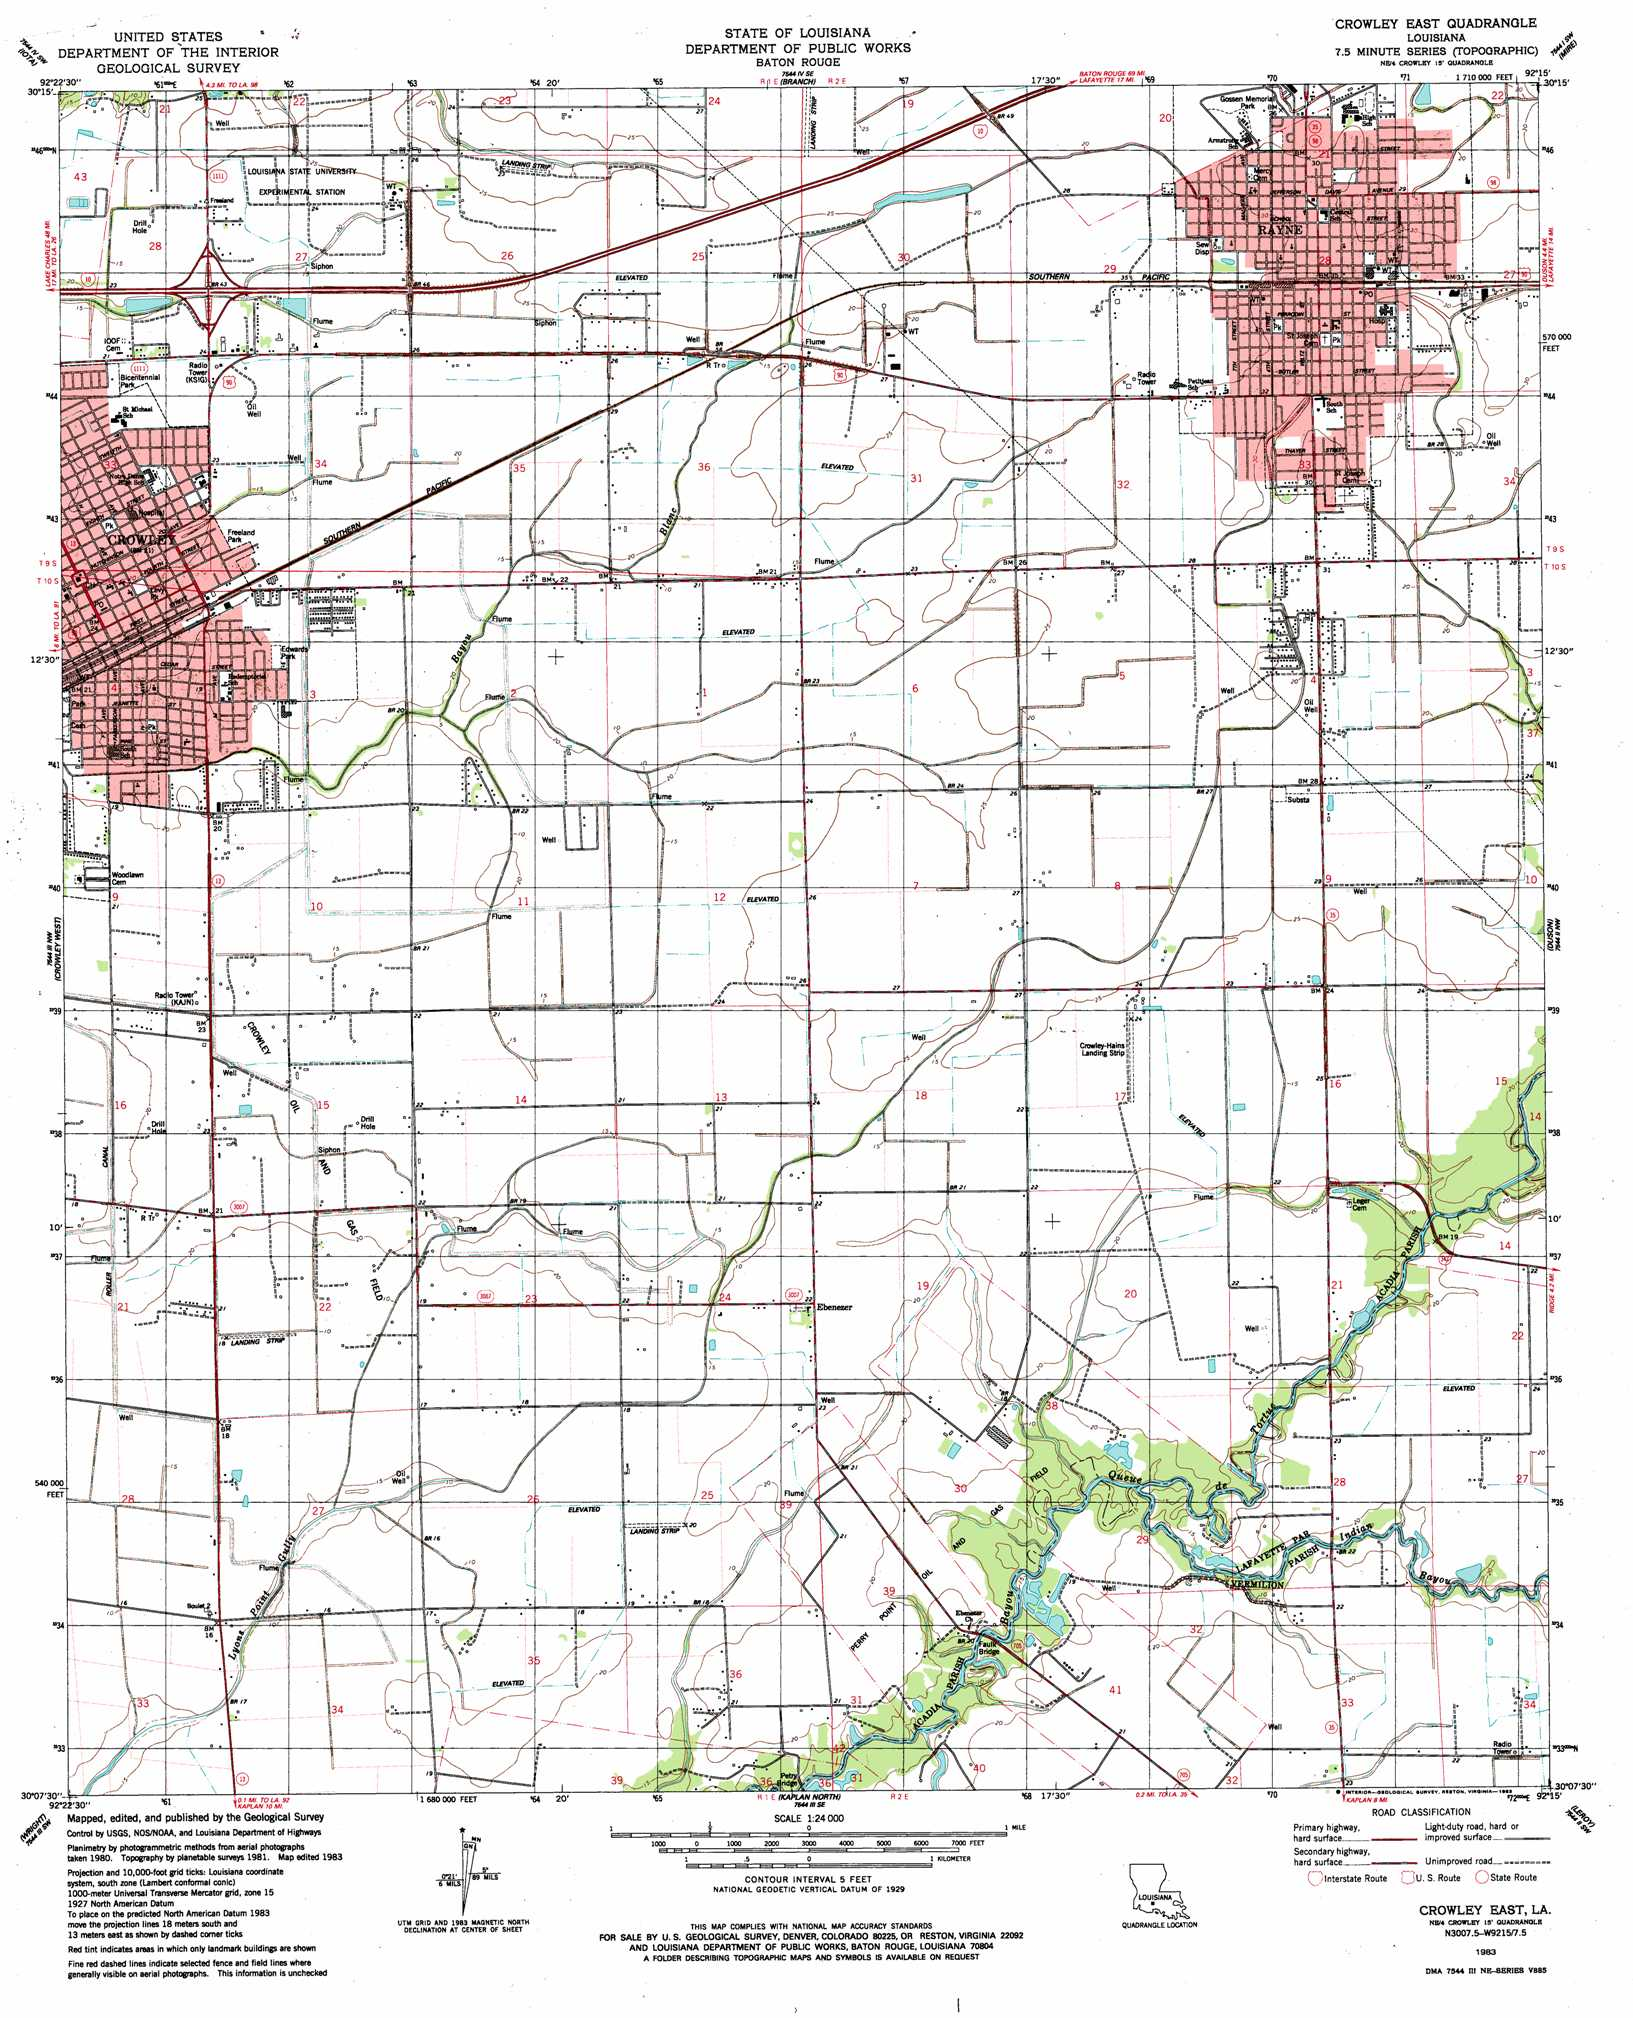 Crowley East Topographic Map LA - USGS Topo Quad 30092b3